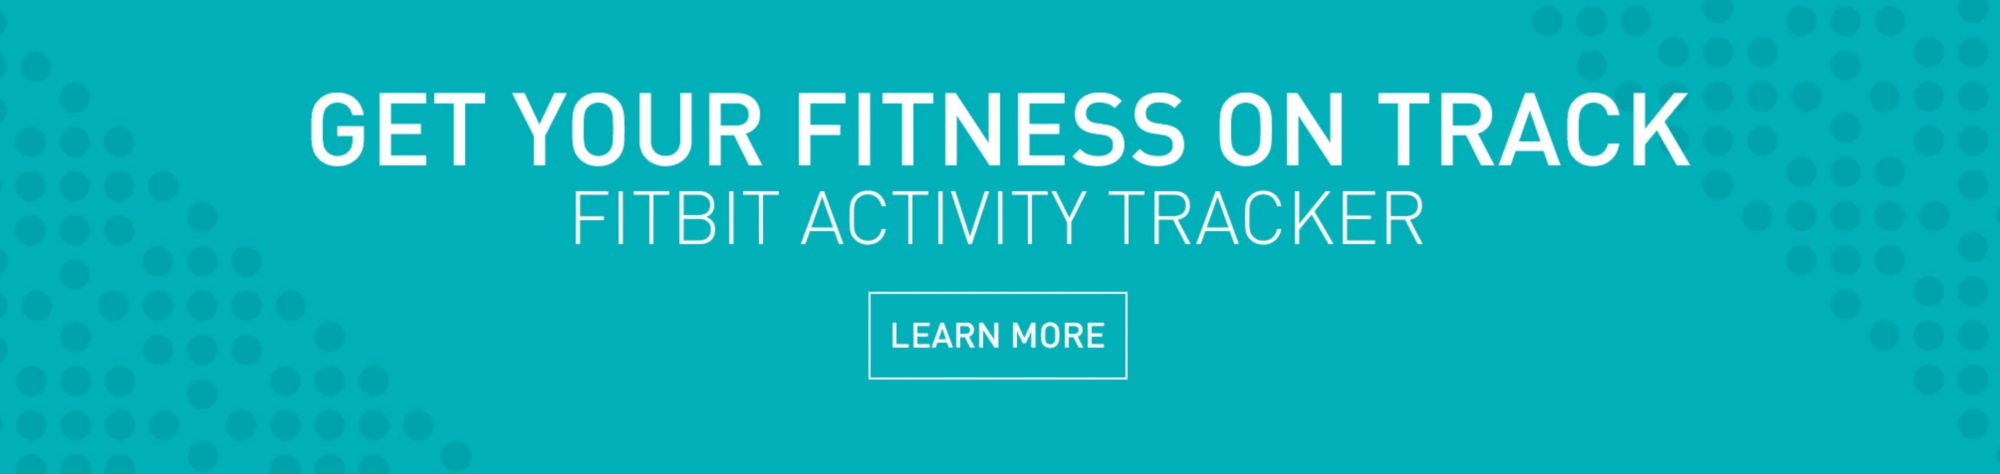 Fitbit Learn More